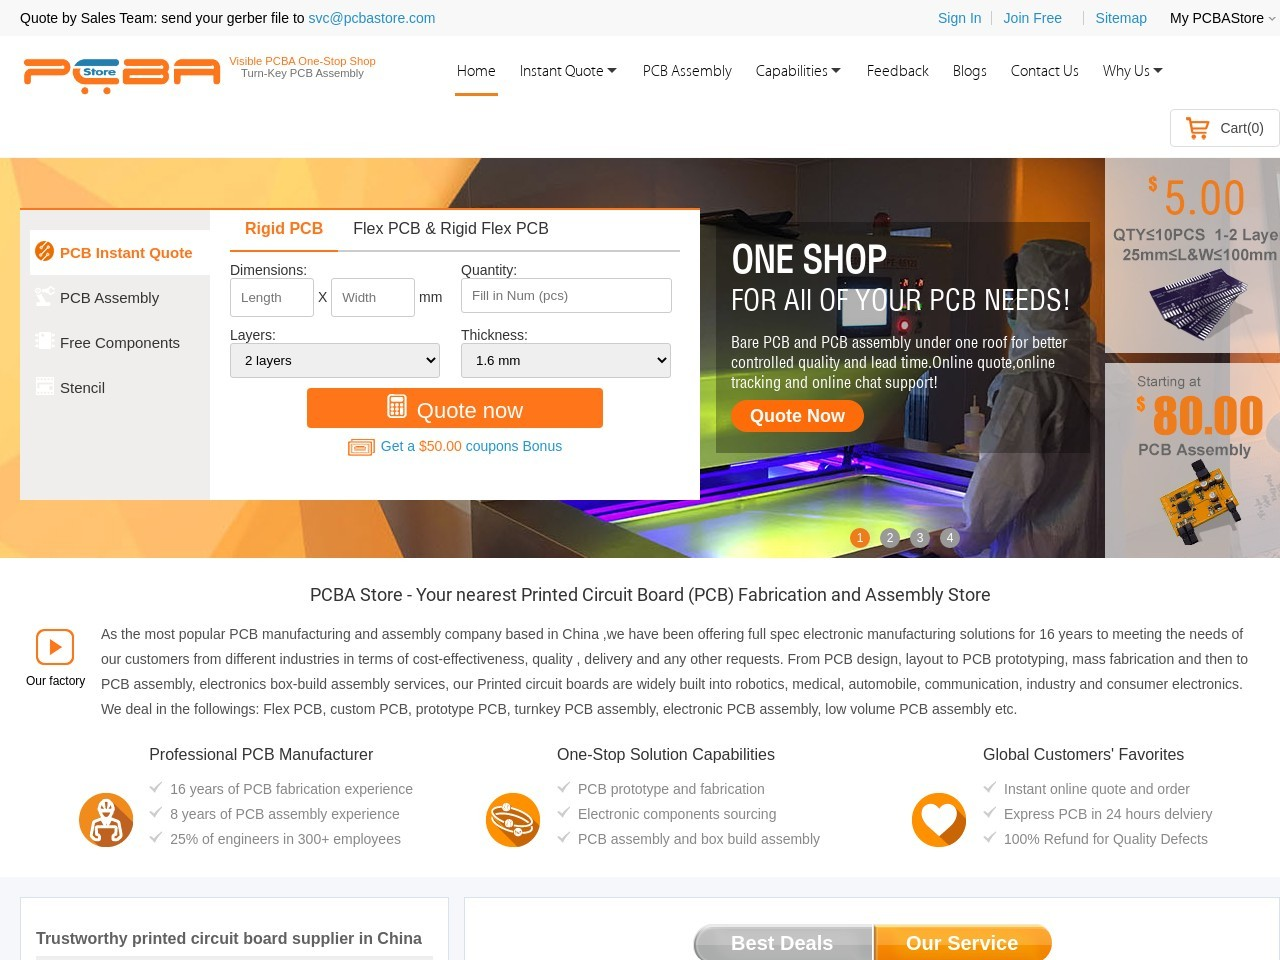 Online PCB Quote and PCB assembly quote system,PCBAStore.com